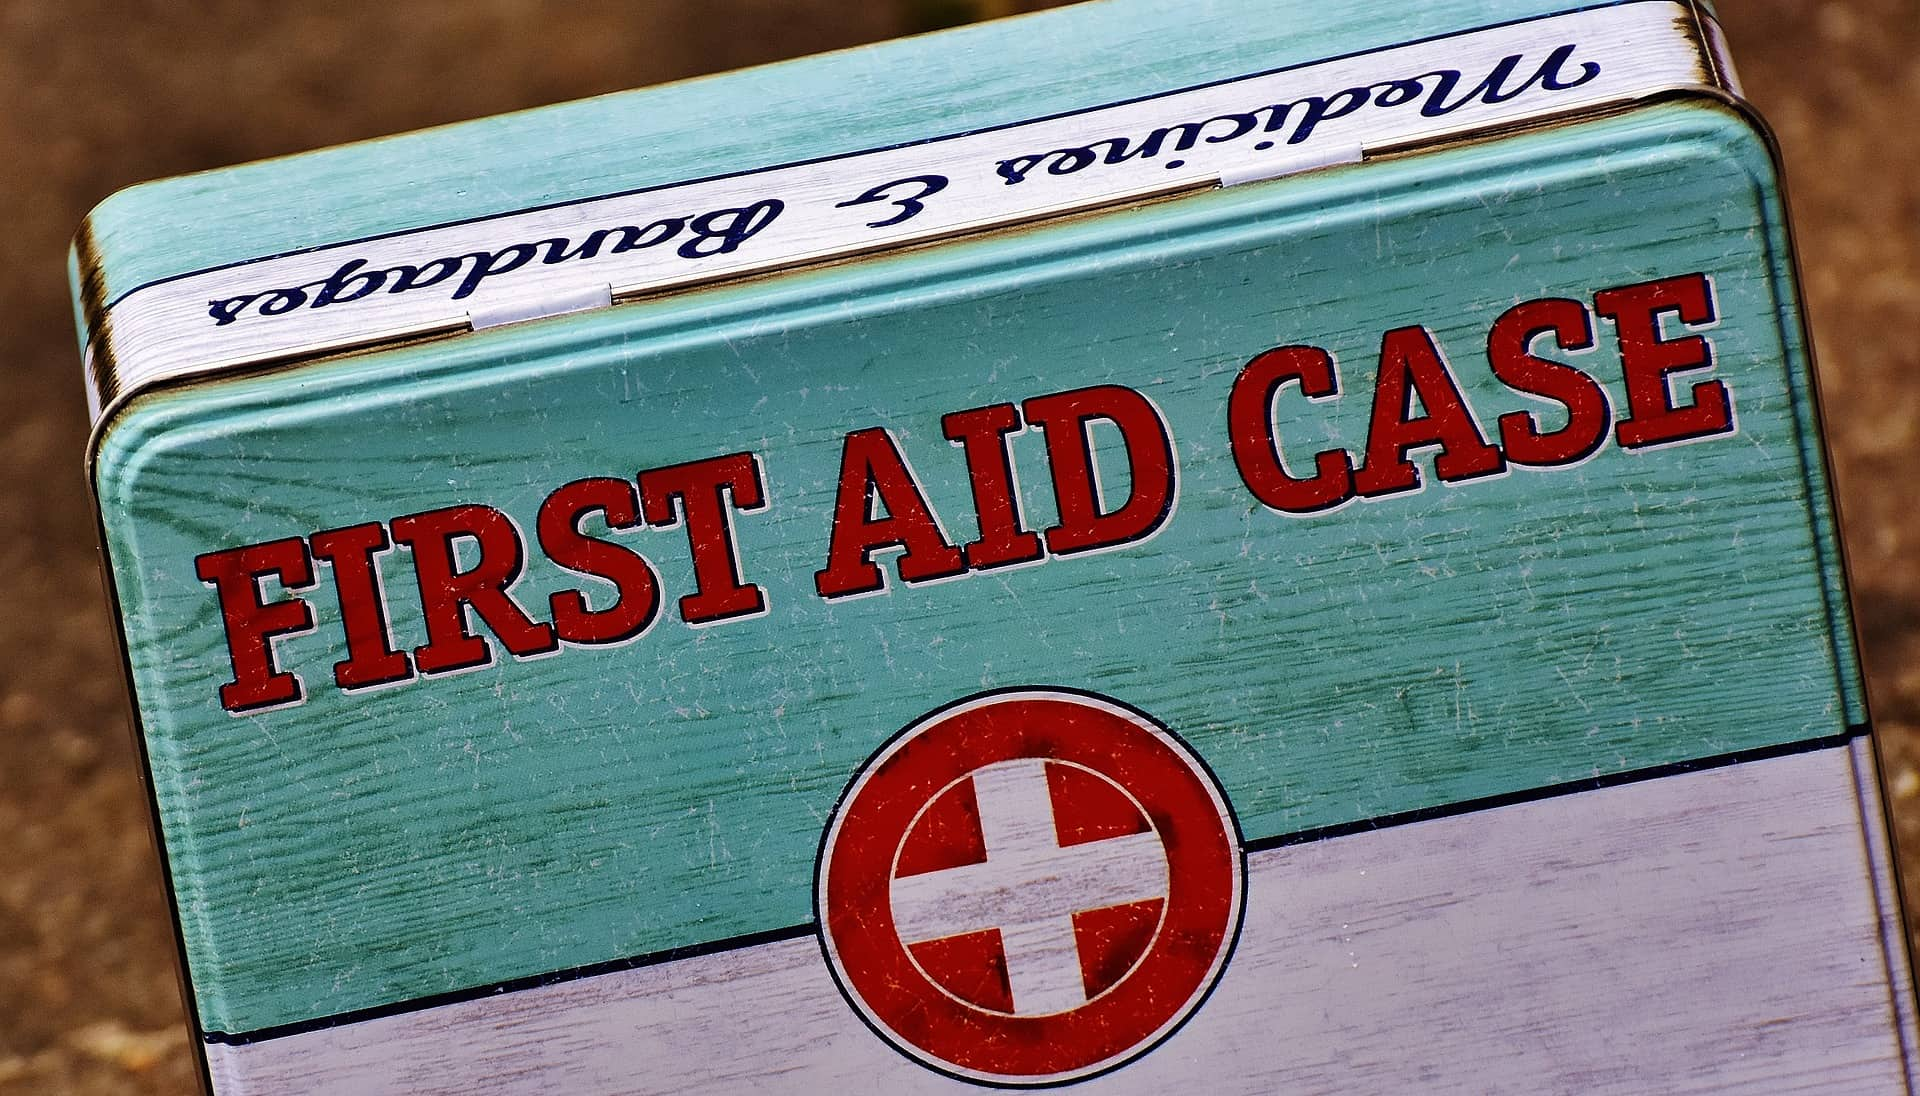 First aid - know the basics